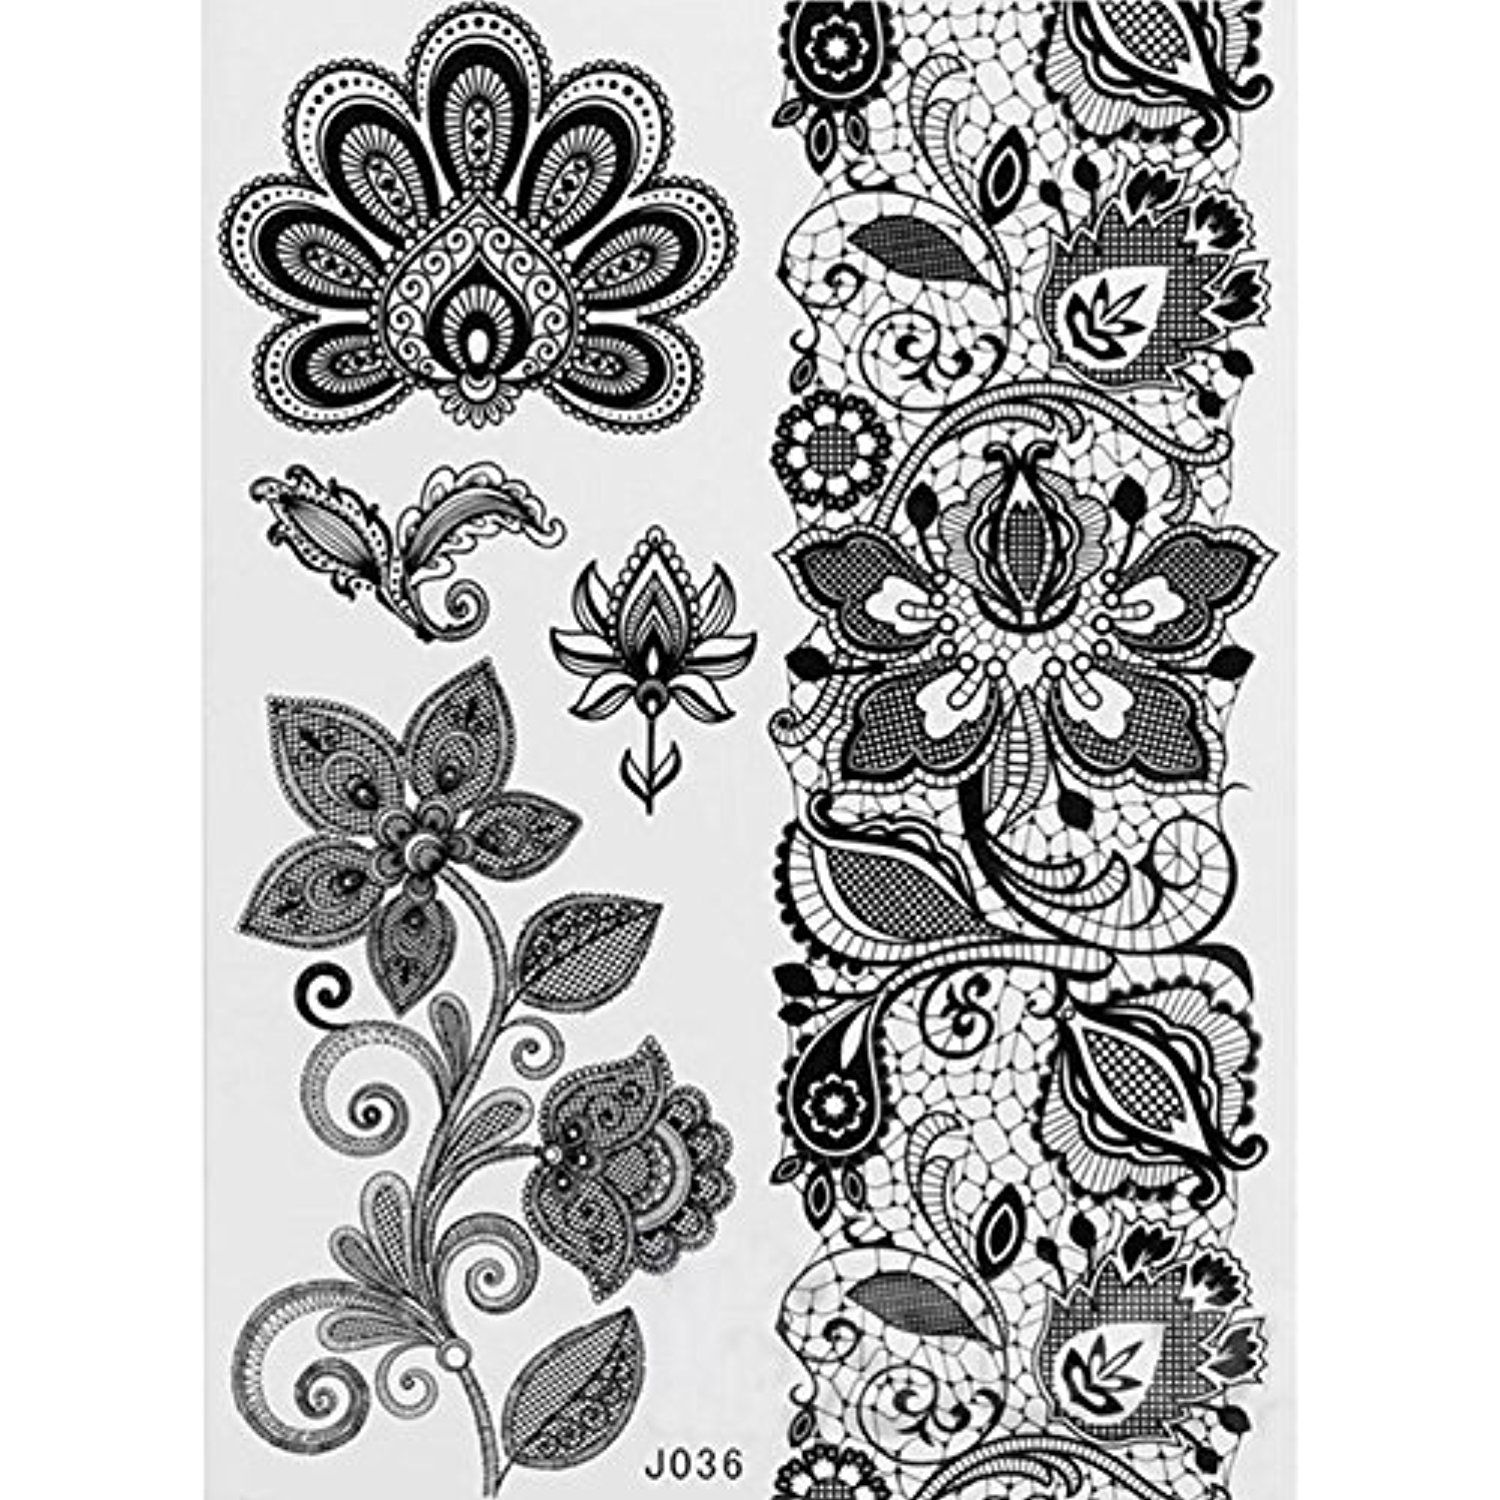 Tattoos for men with kids  sheet of black floral removable lace body art tattoo sticker for